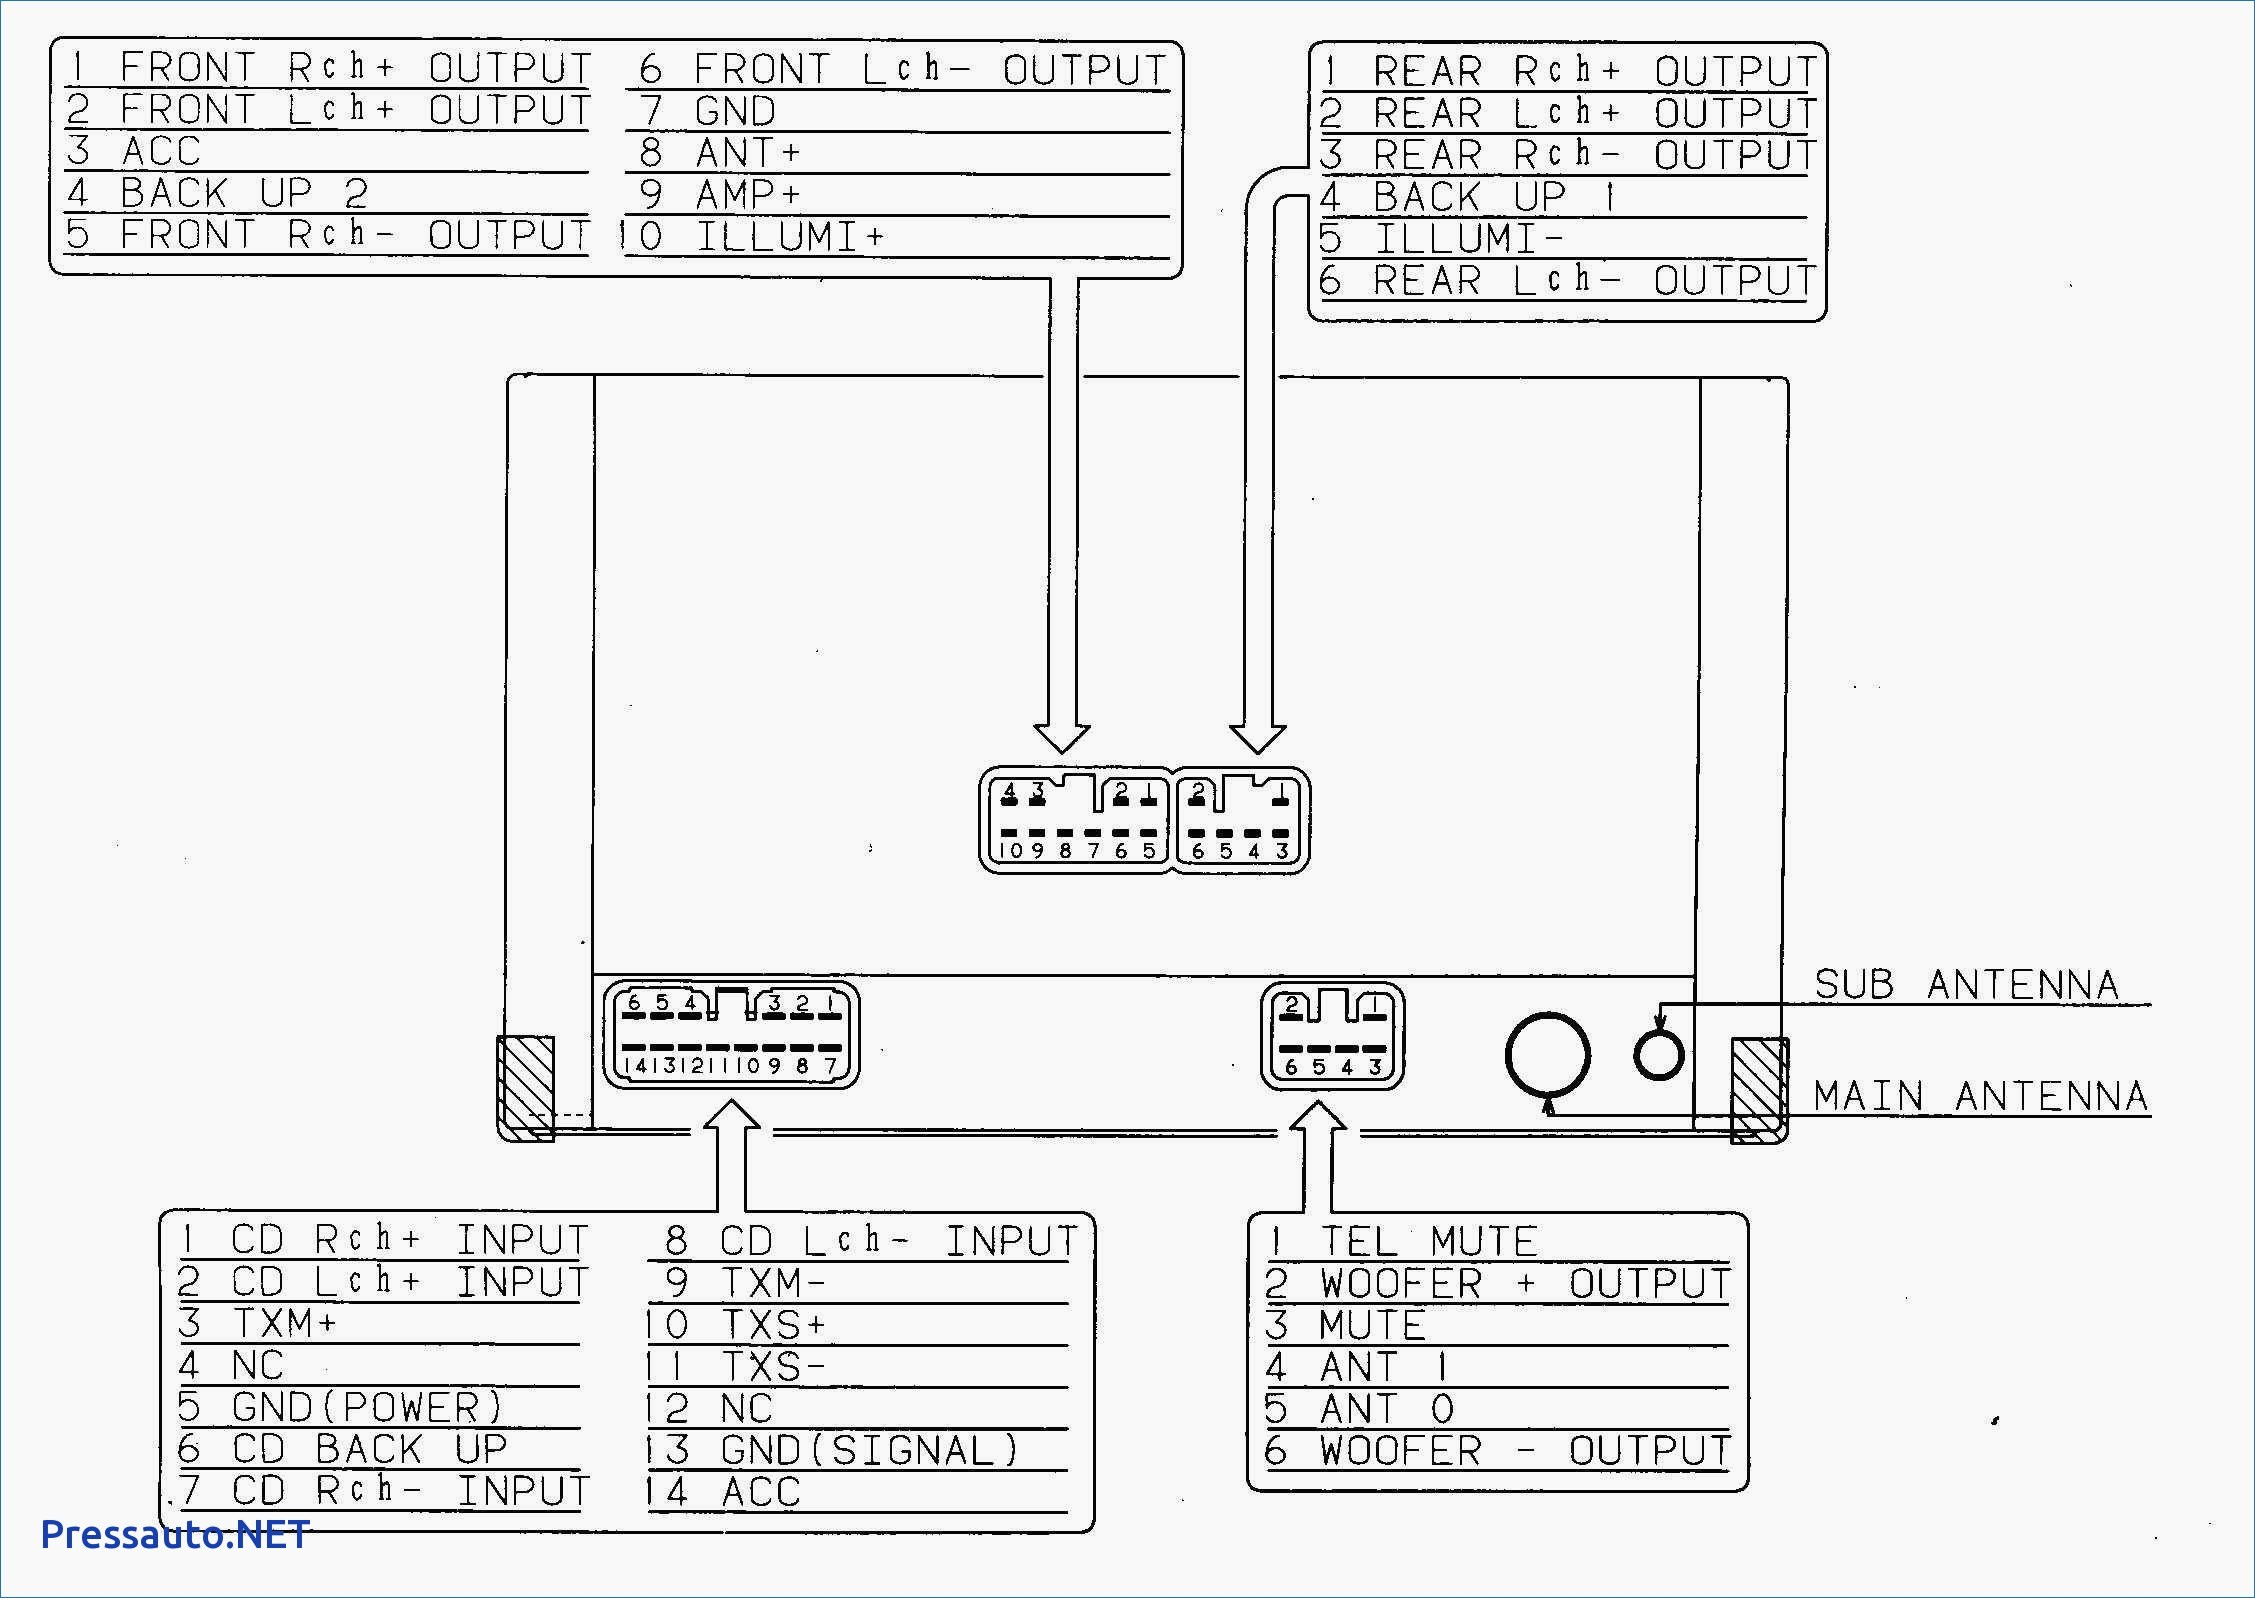 pioneer 3500 bhs wiring diagrams daily update wiring diagram Pioneer Deh P7700mp Wiring-Diagram